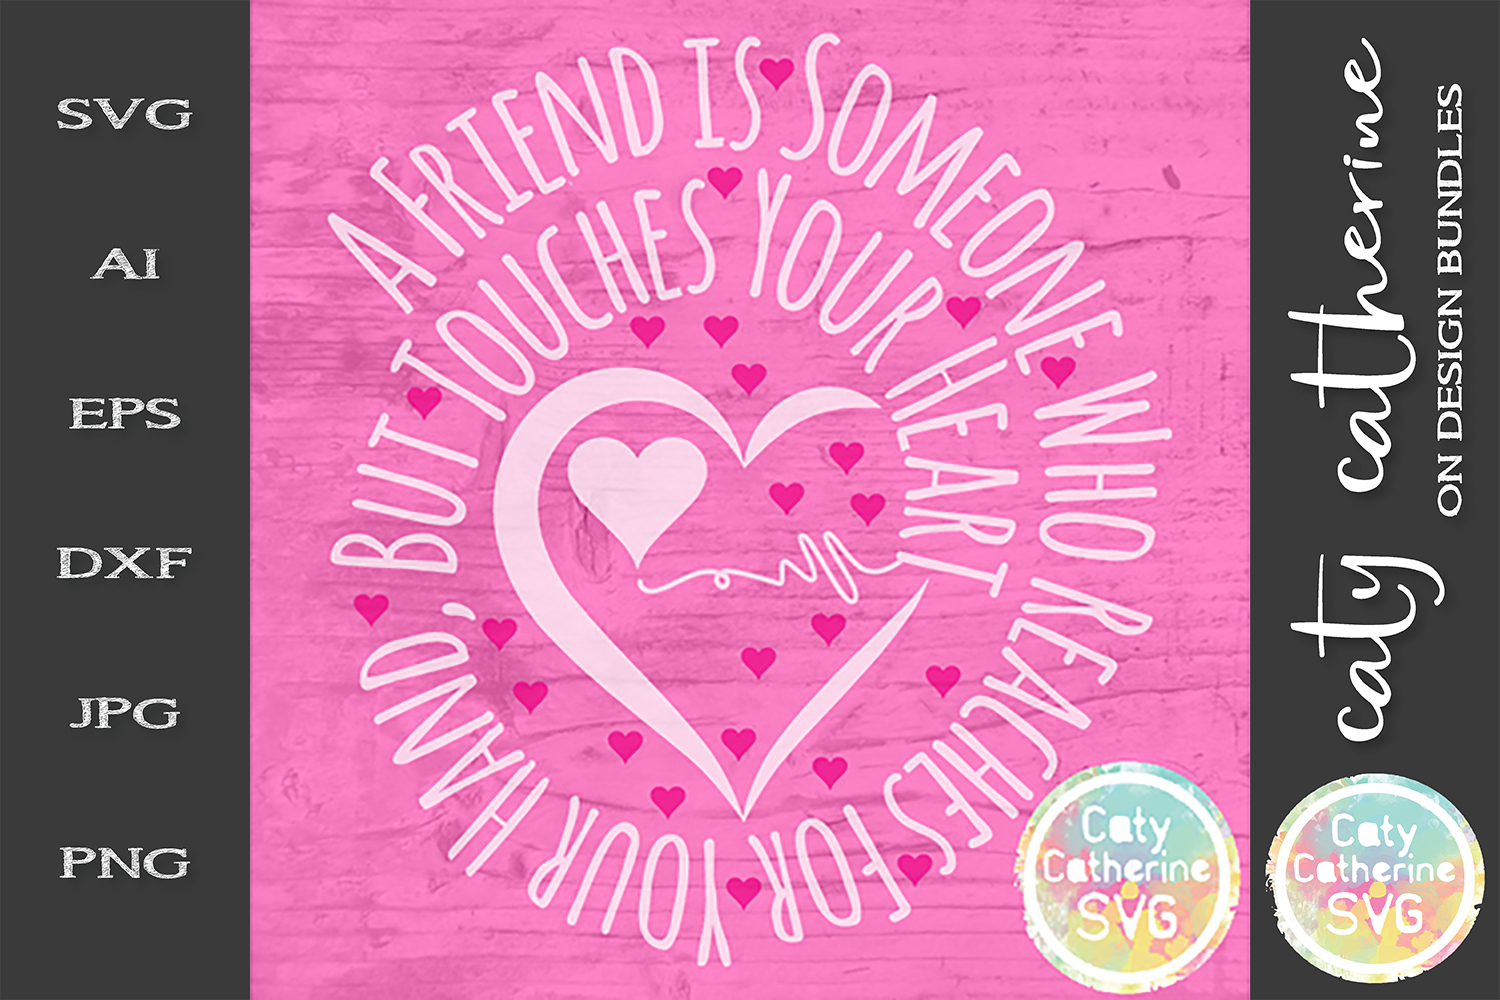 A Friend Is Someone Who Reaches For Your Hand SVG Cut File example image 1